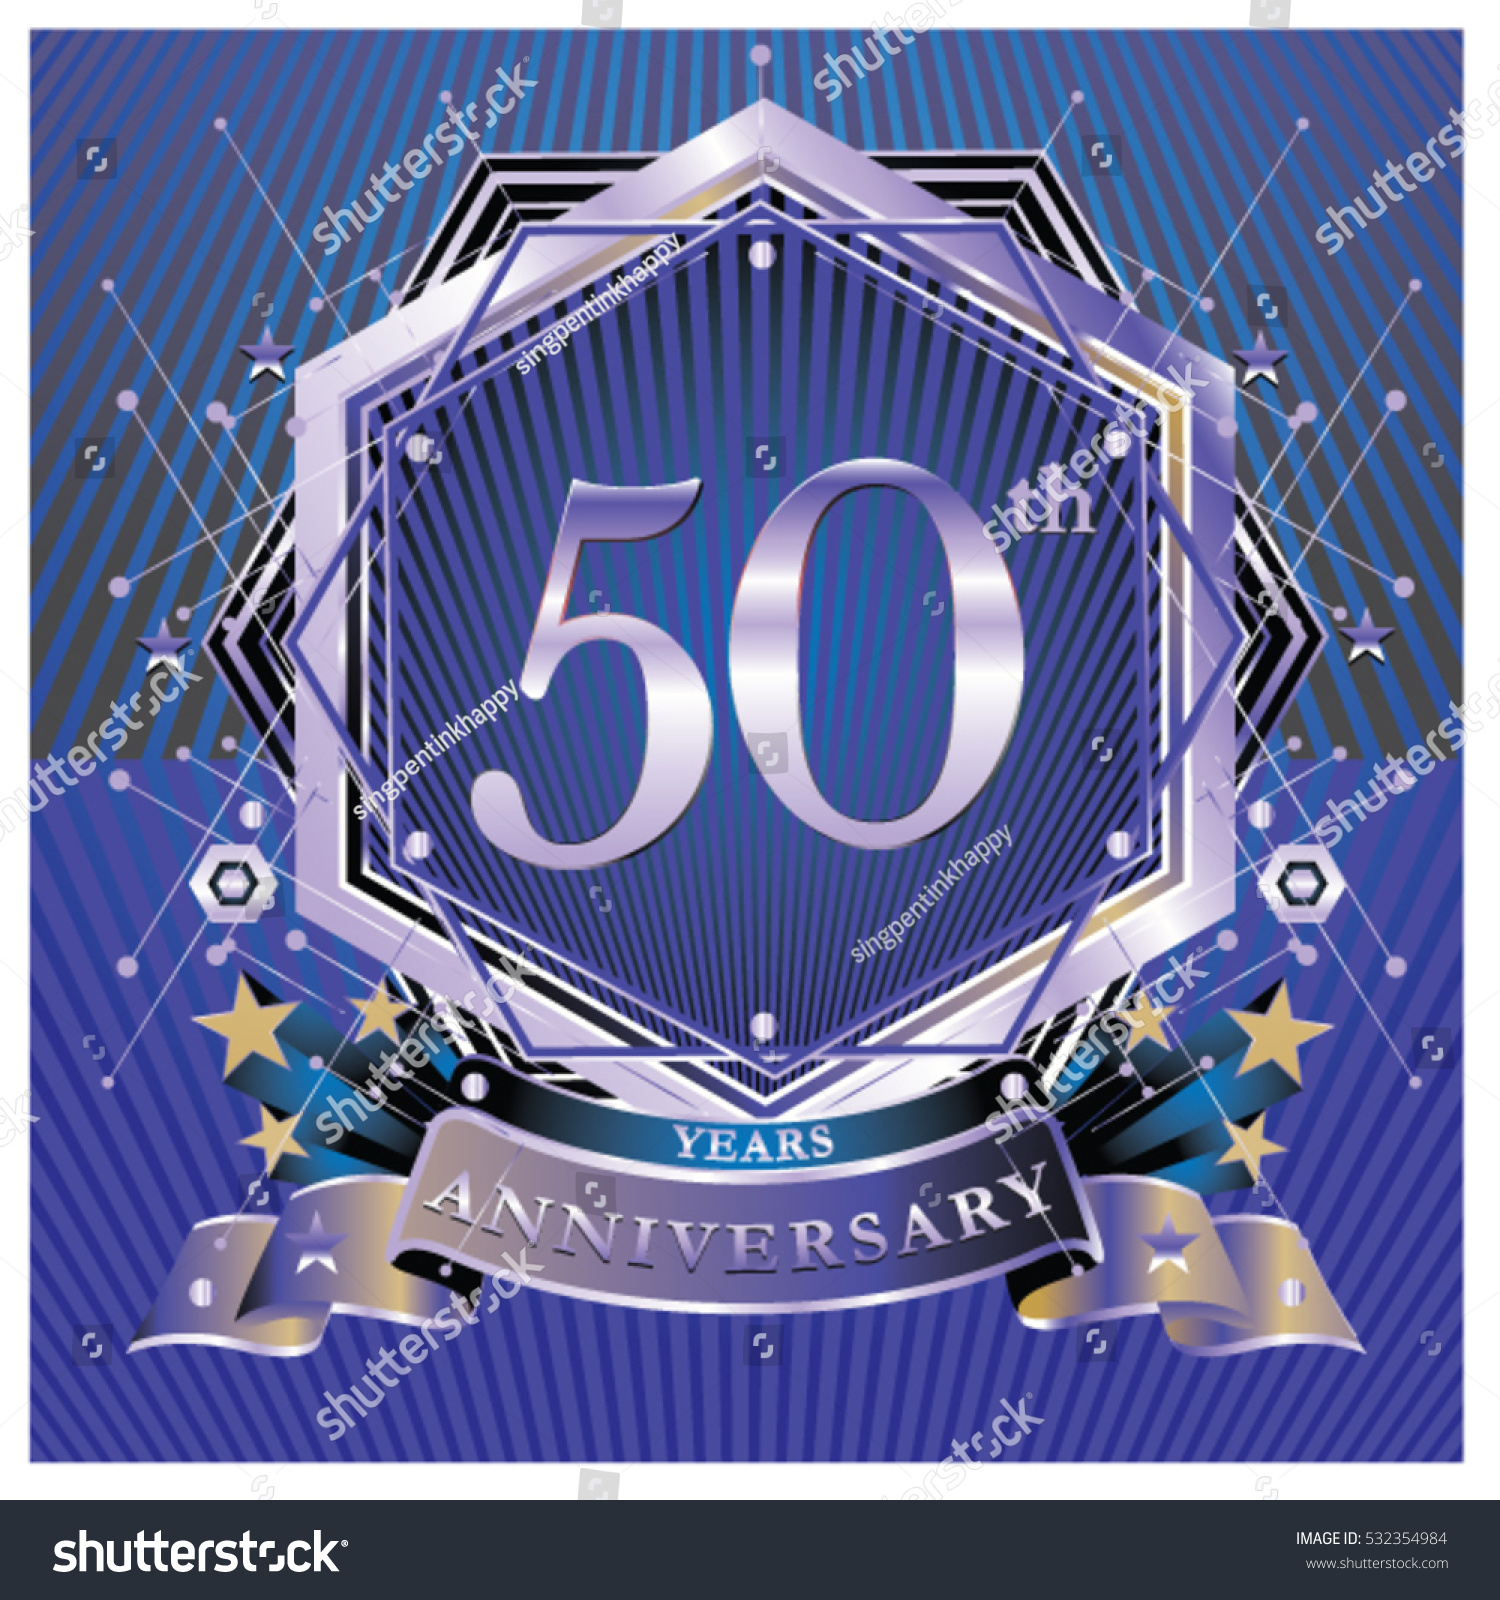 50 years anniversary logo celebration ring stock vector 532354984 50 years anniversary logo celebration with ring and ribbon symbol and template for greeting card buycottarizona Choice Image